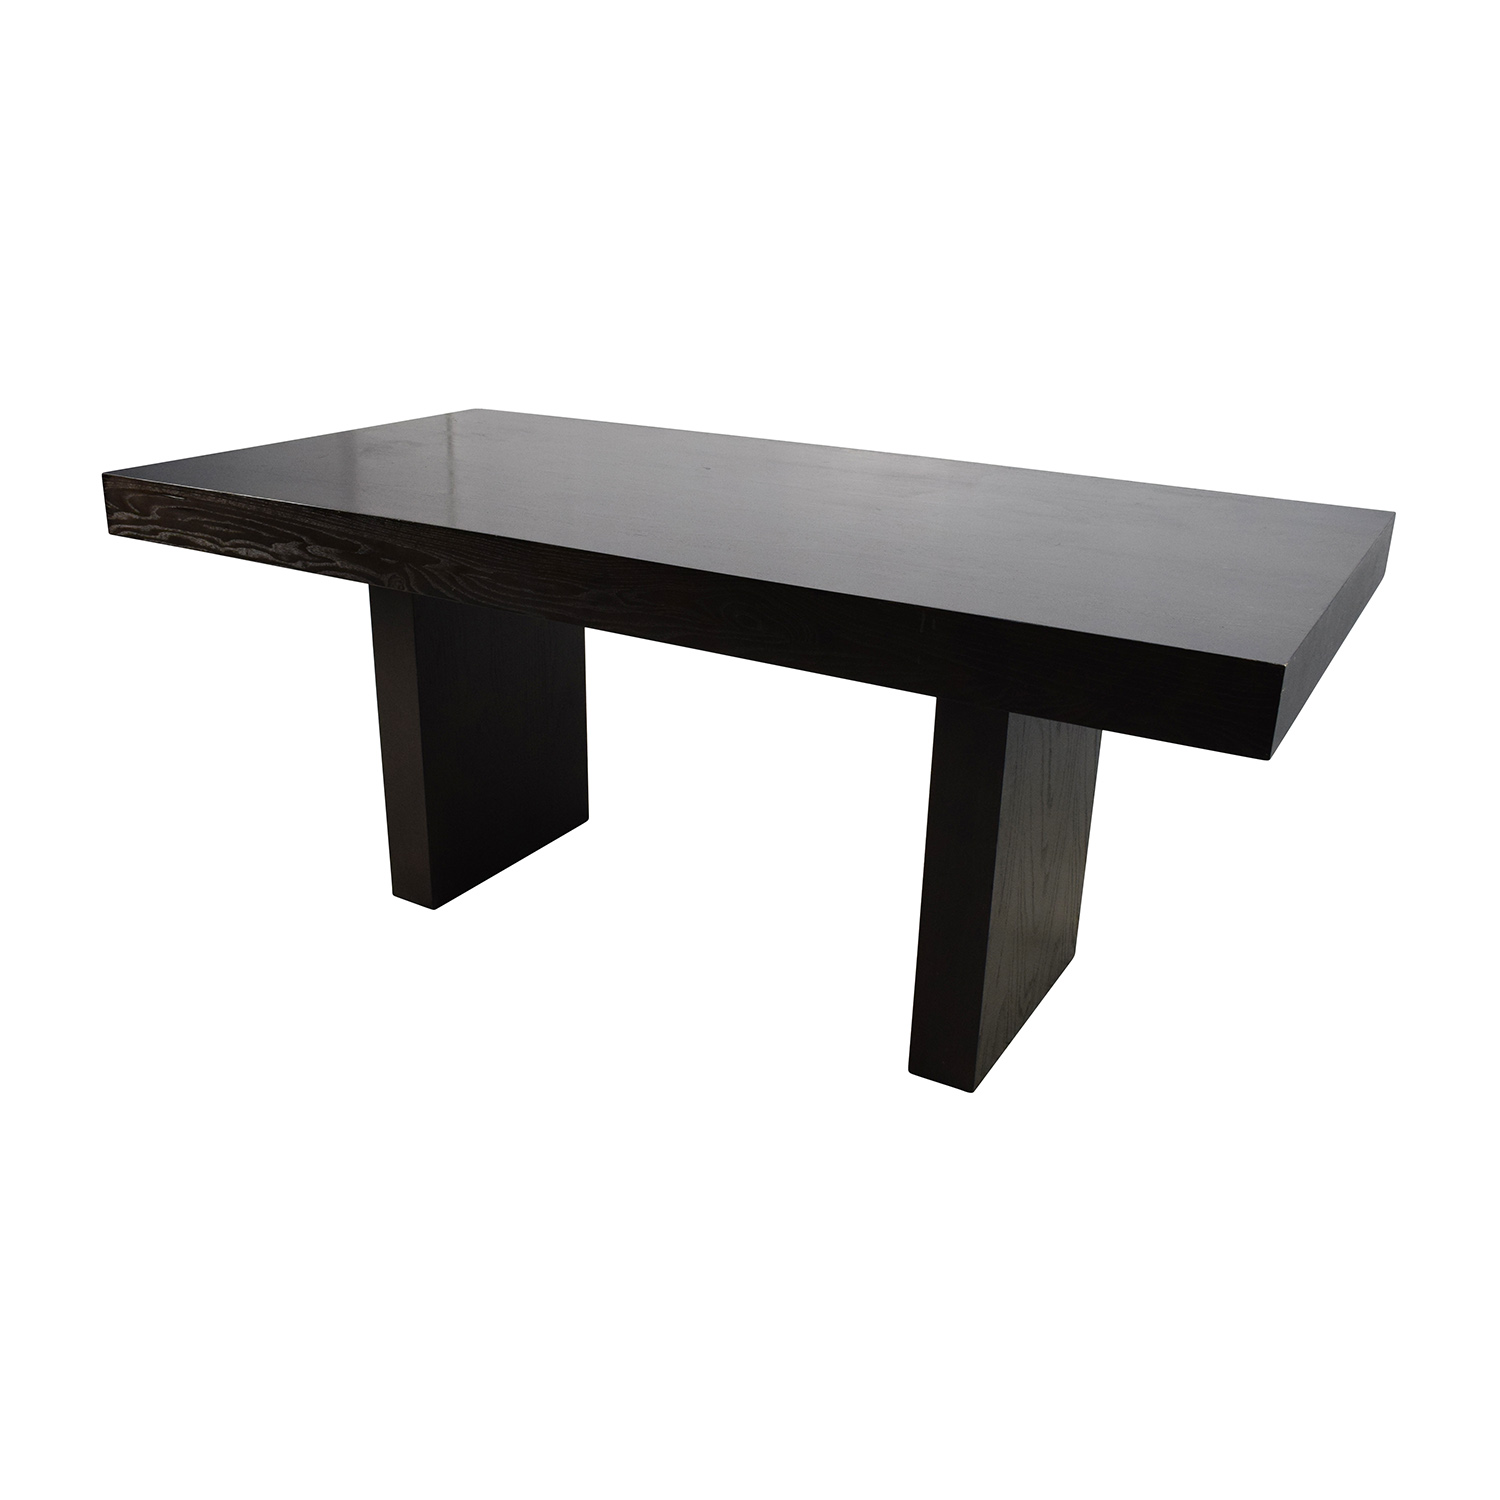 76 OFF West Elm West Elm Terra Dining Table Tables